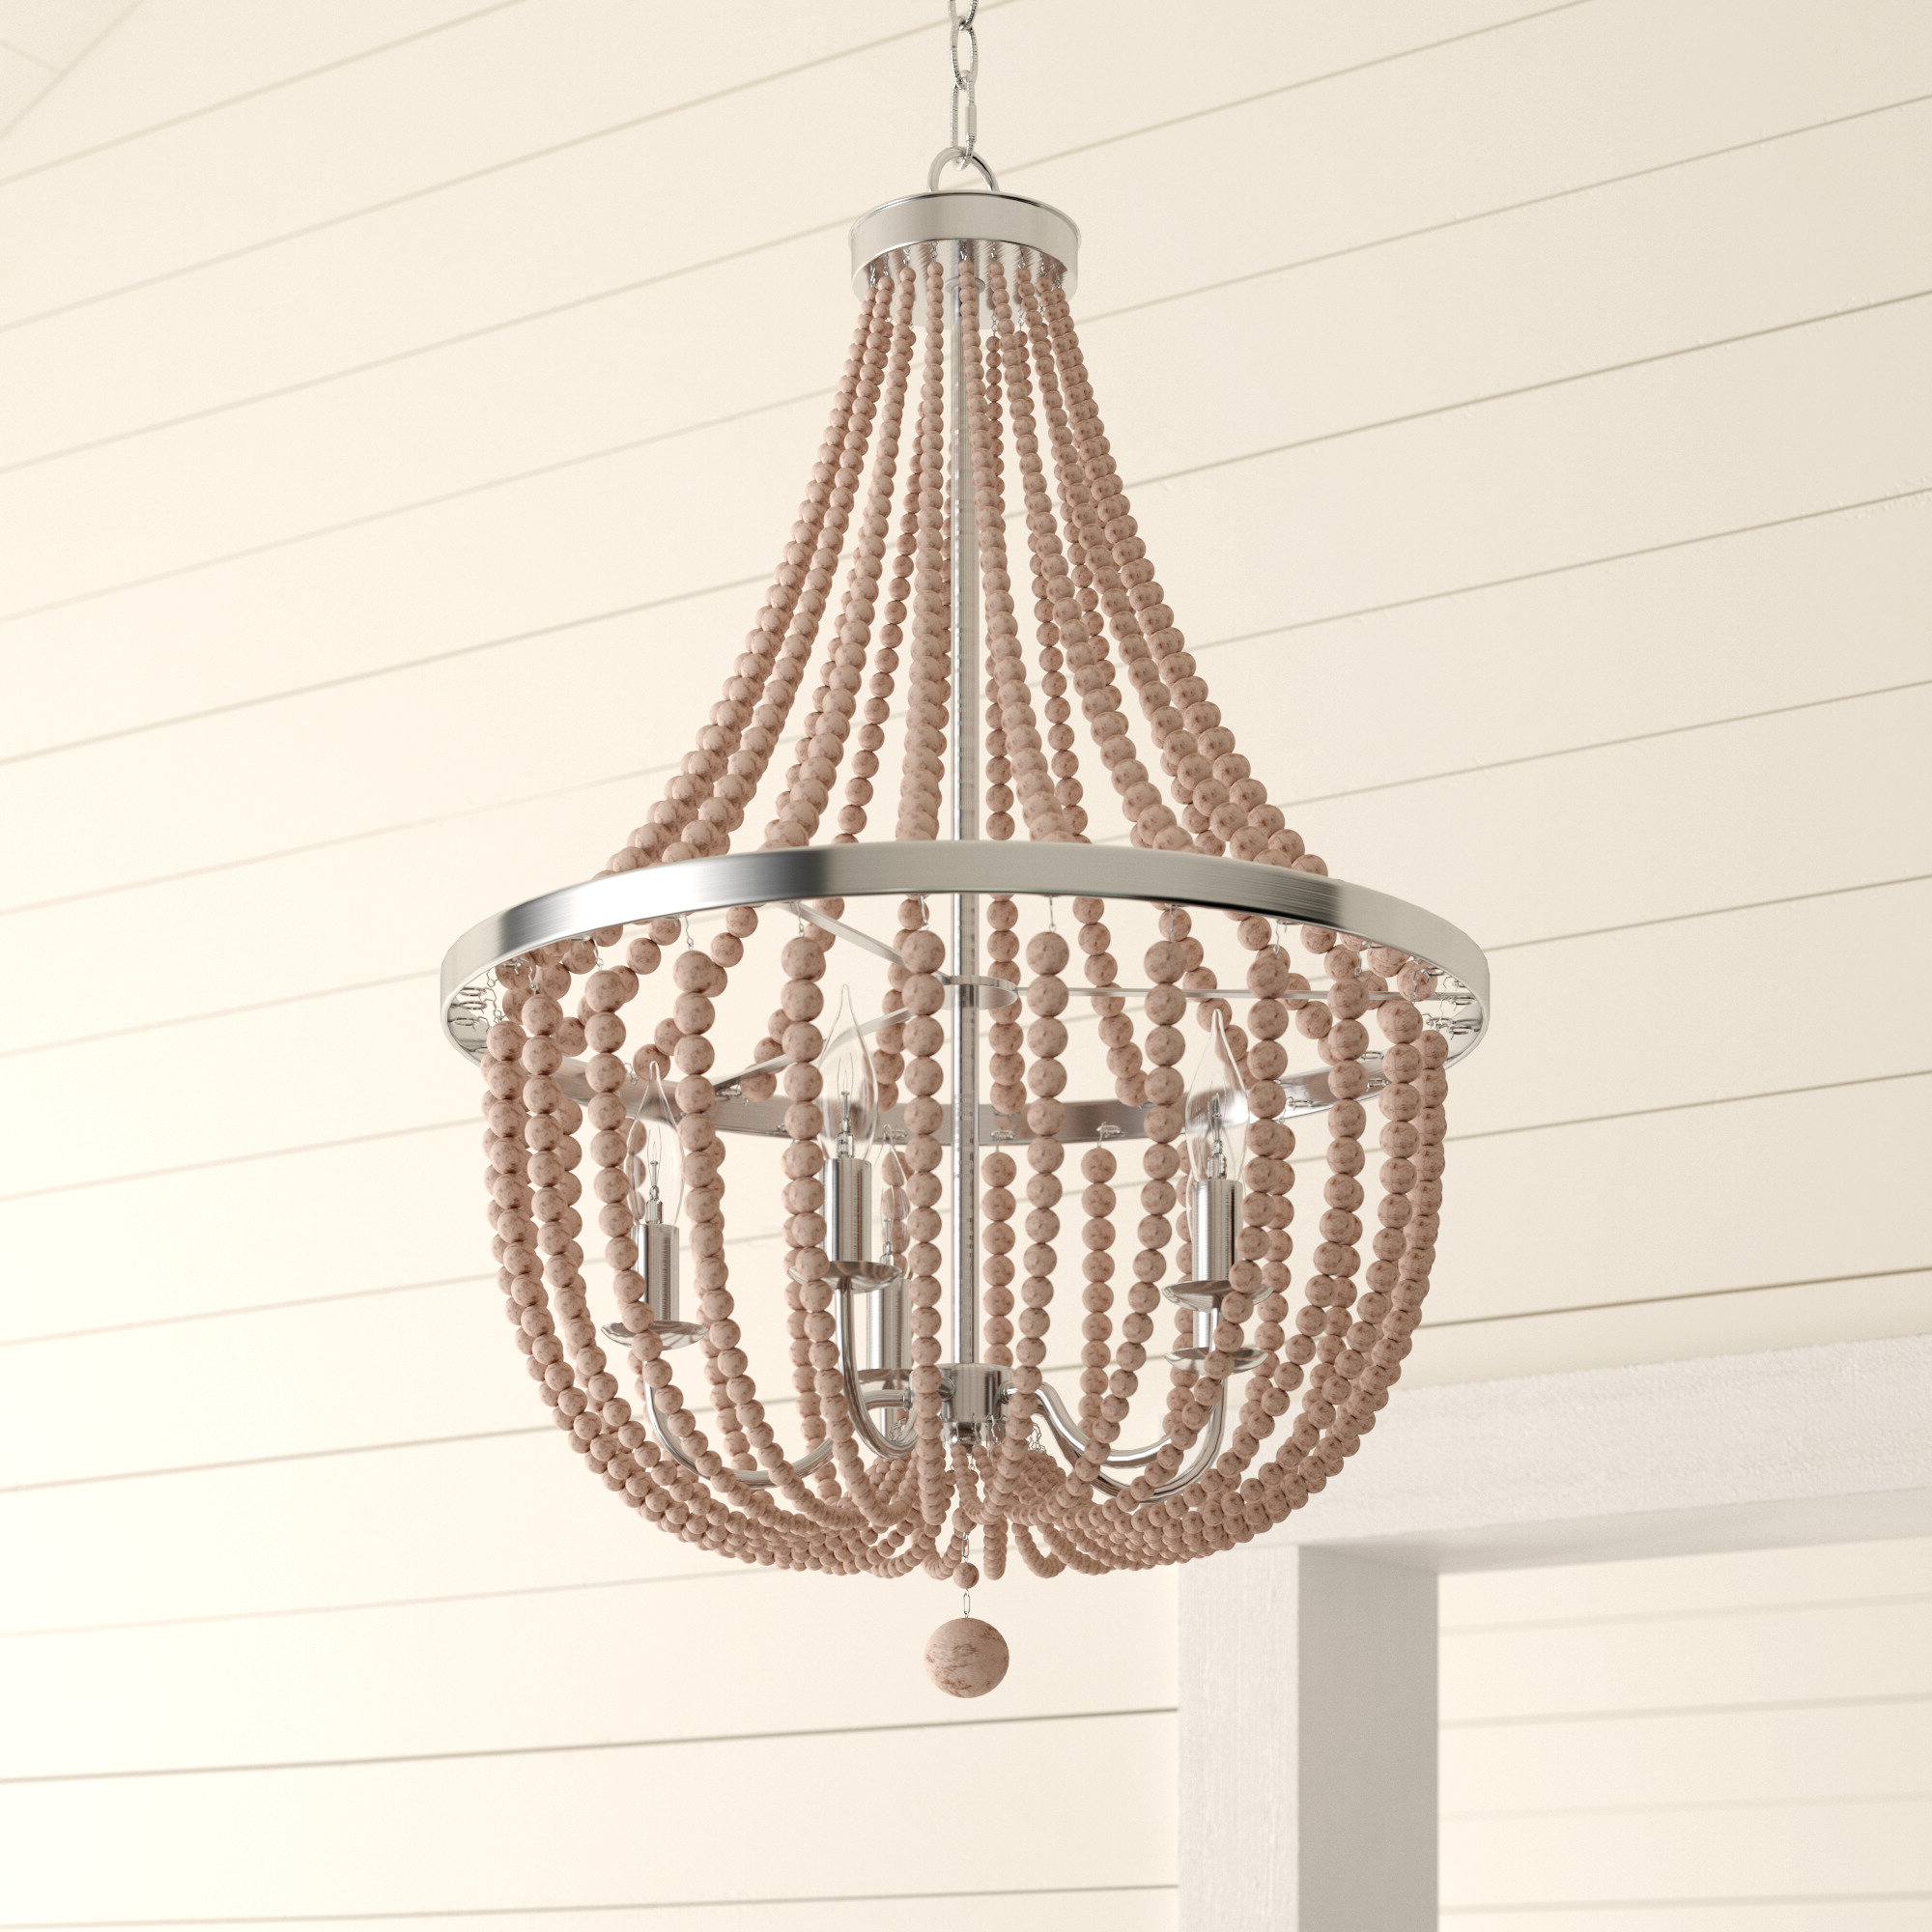 Bay Isle Home Tilden Wood Bead 5 Light Empire Chandelier Intended For Famous Duron 5 Light Empire Chandeliers (View 2 of 20)